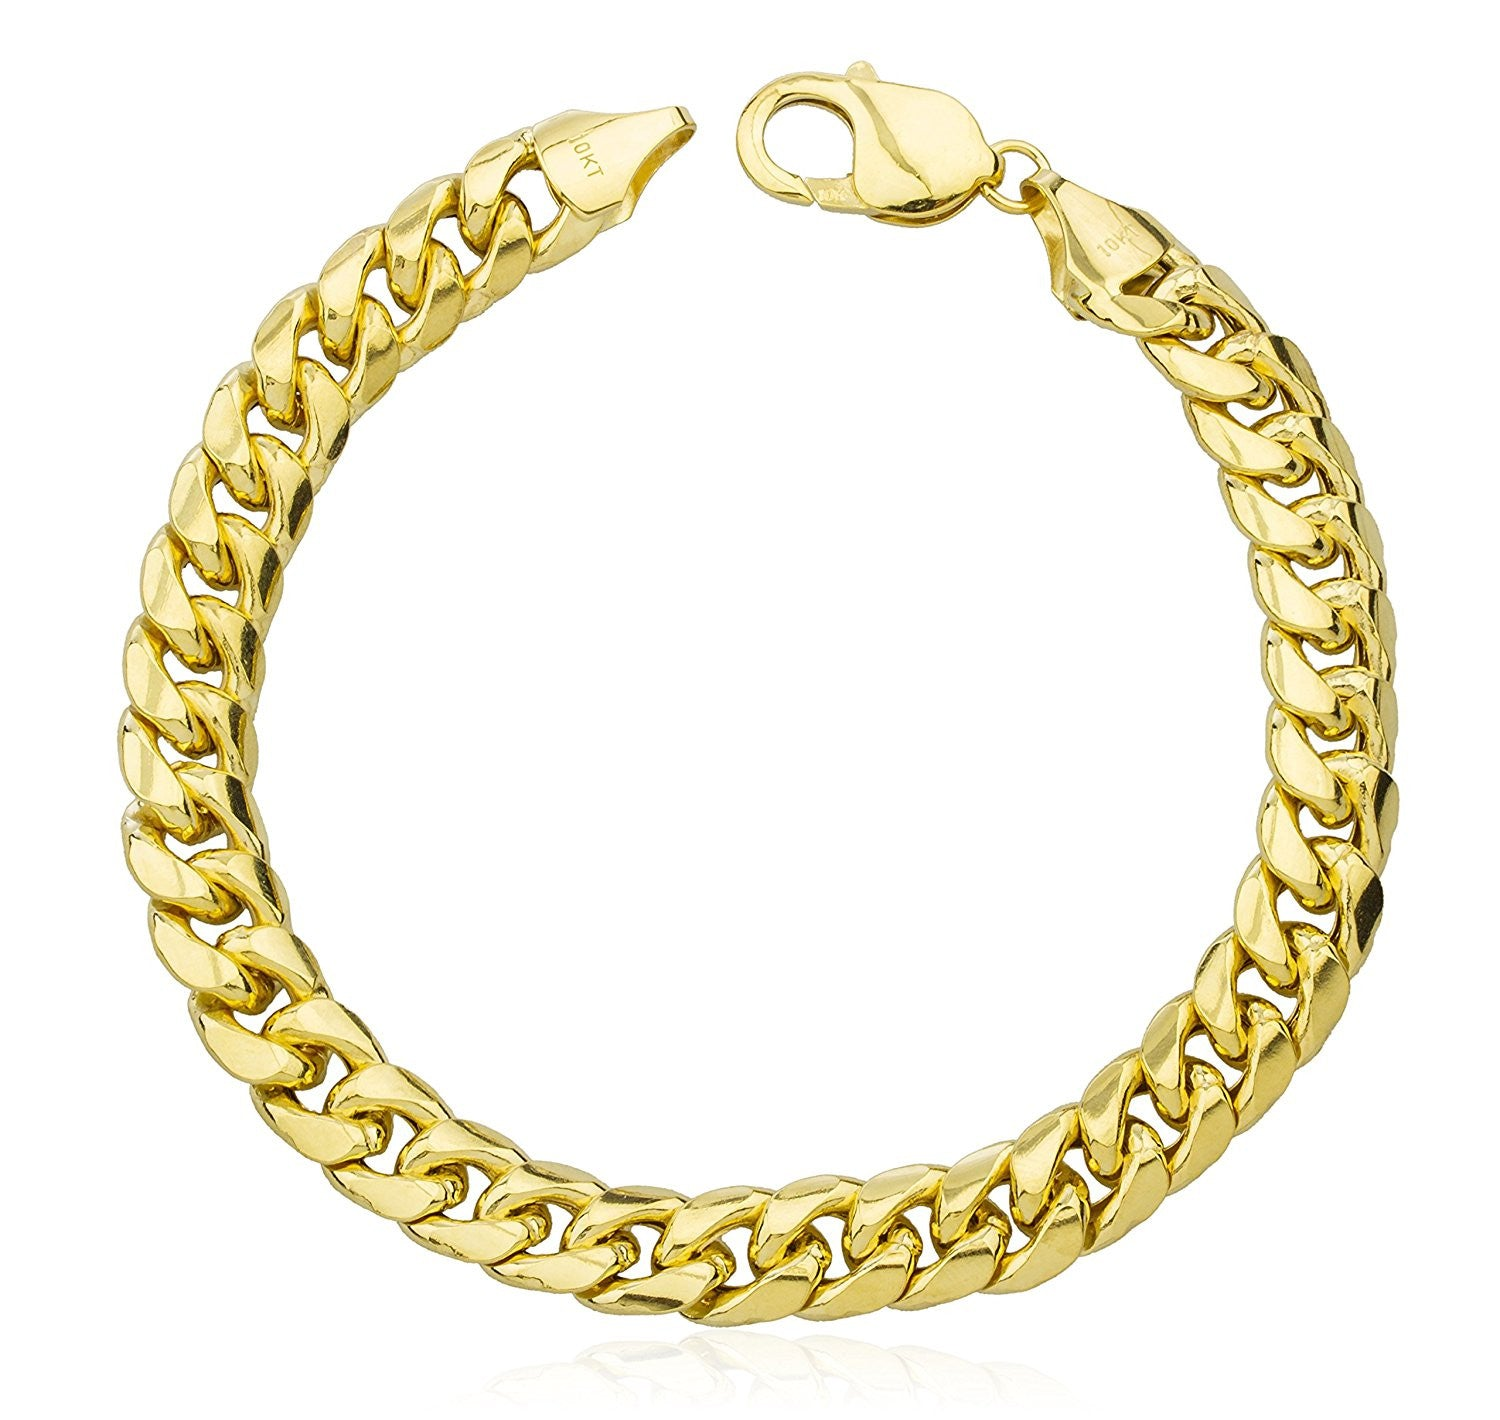 bracelet men solid gold tejido product yellow for link chino mentejido